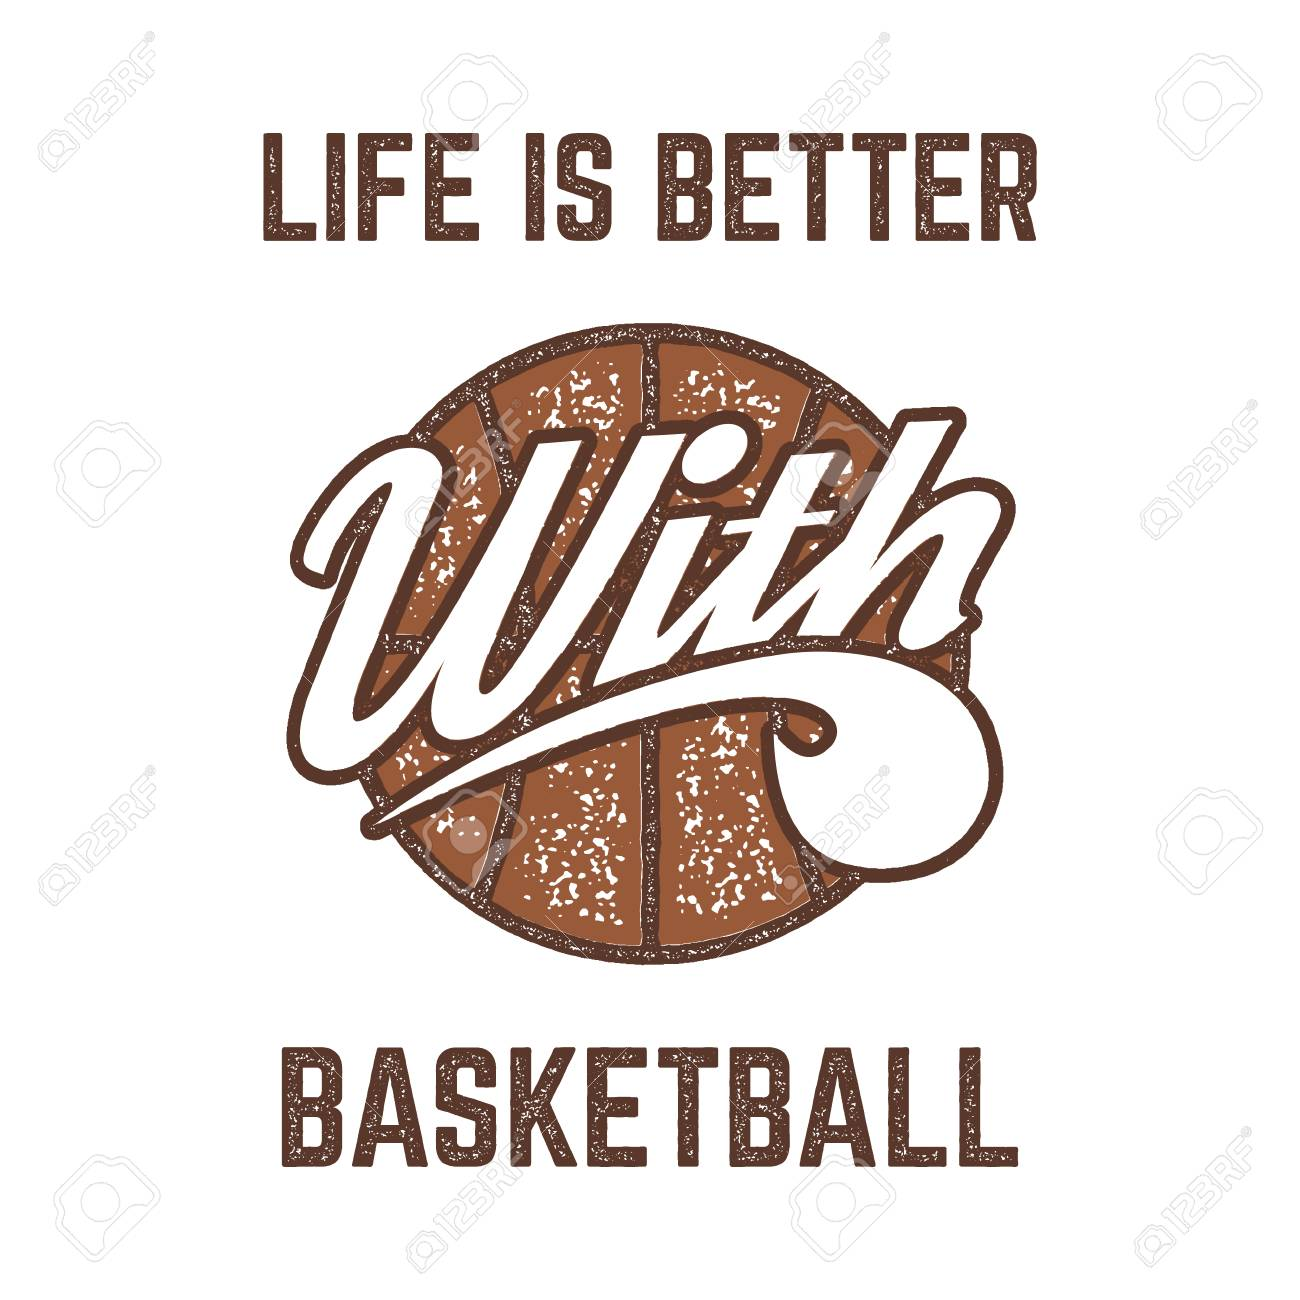 7e1167a6 Vintage Basketball sports tee design in retro rubber style with symbols -  ball and vector typography - life is better. Hipster patch for t shirt, ...